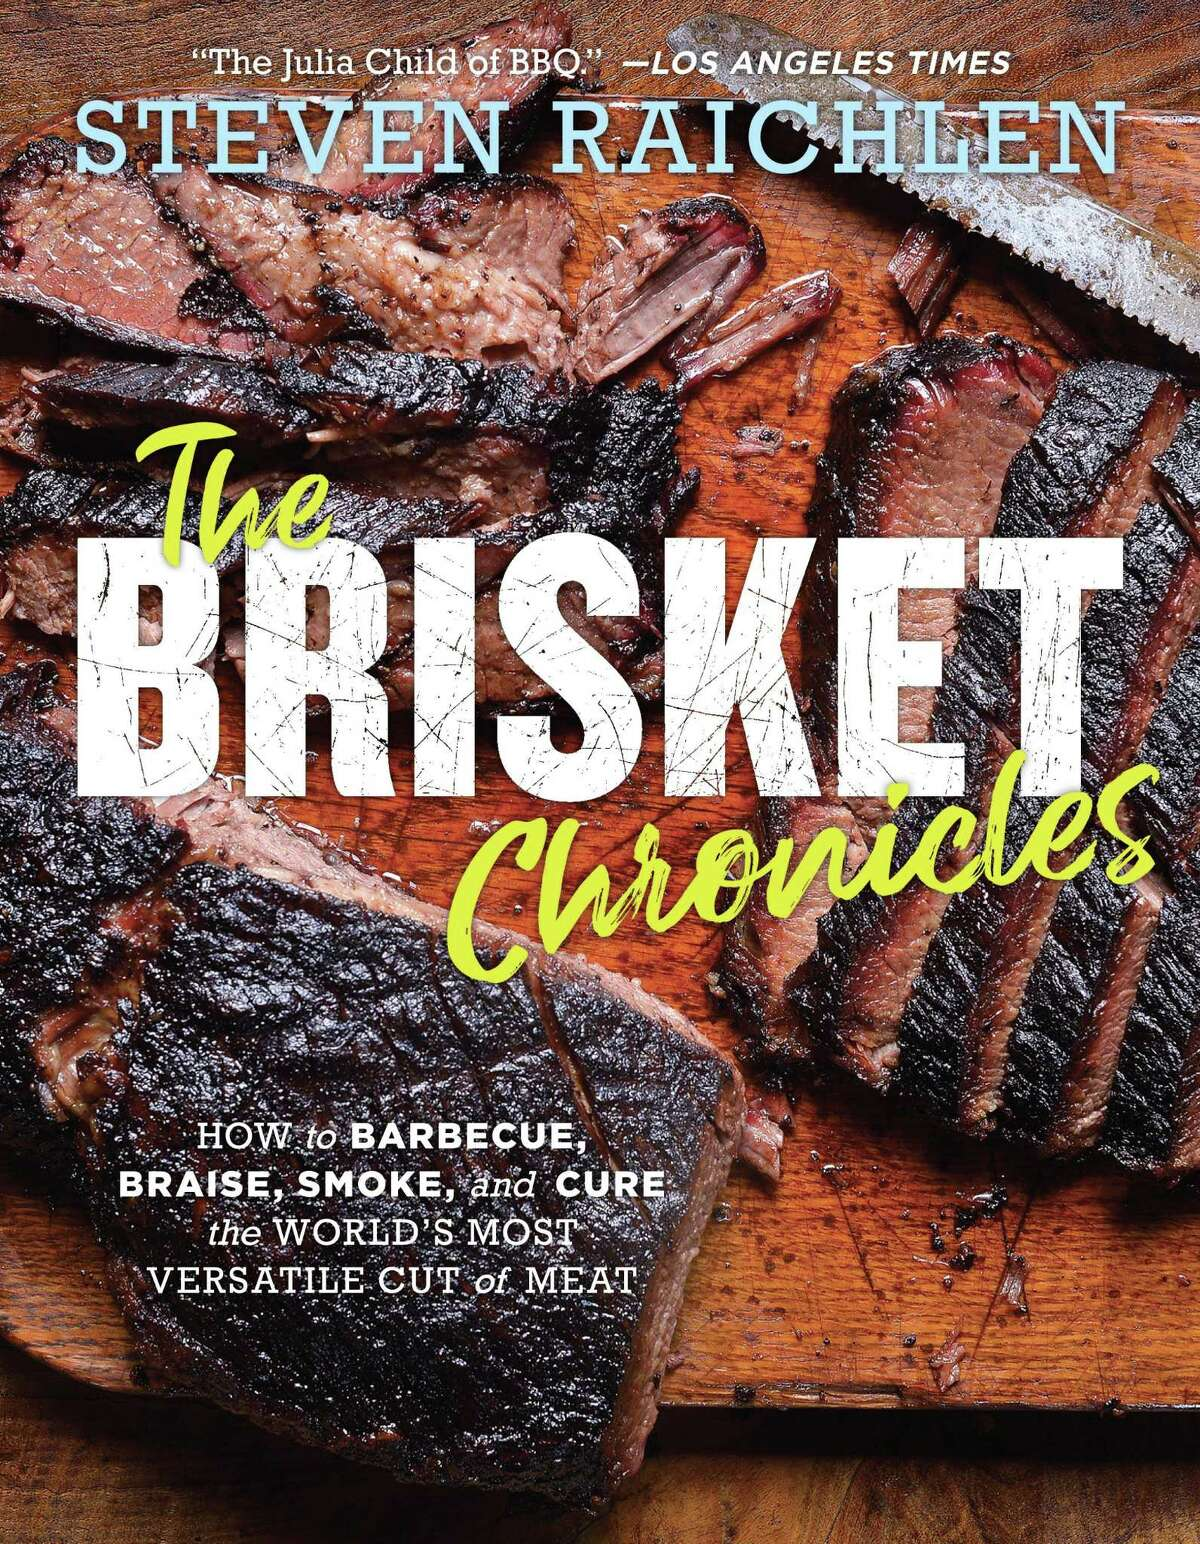 """Cover:""""The Brisket Chronicles: How to Barbecue, Braise, Smoke, and Cure the World's Most Epic Cut of Meat"""" by Steven Raichlen (Workman, $19.95)."""